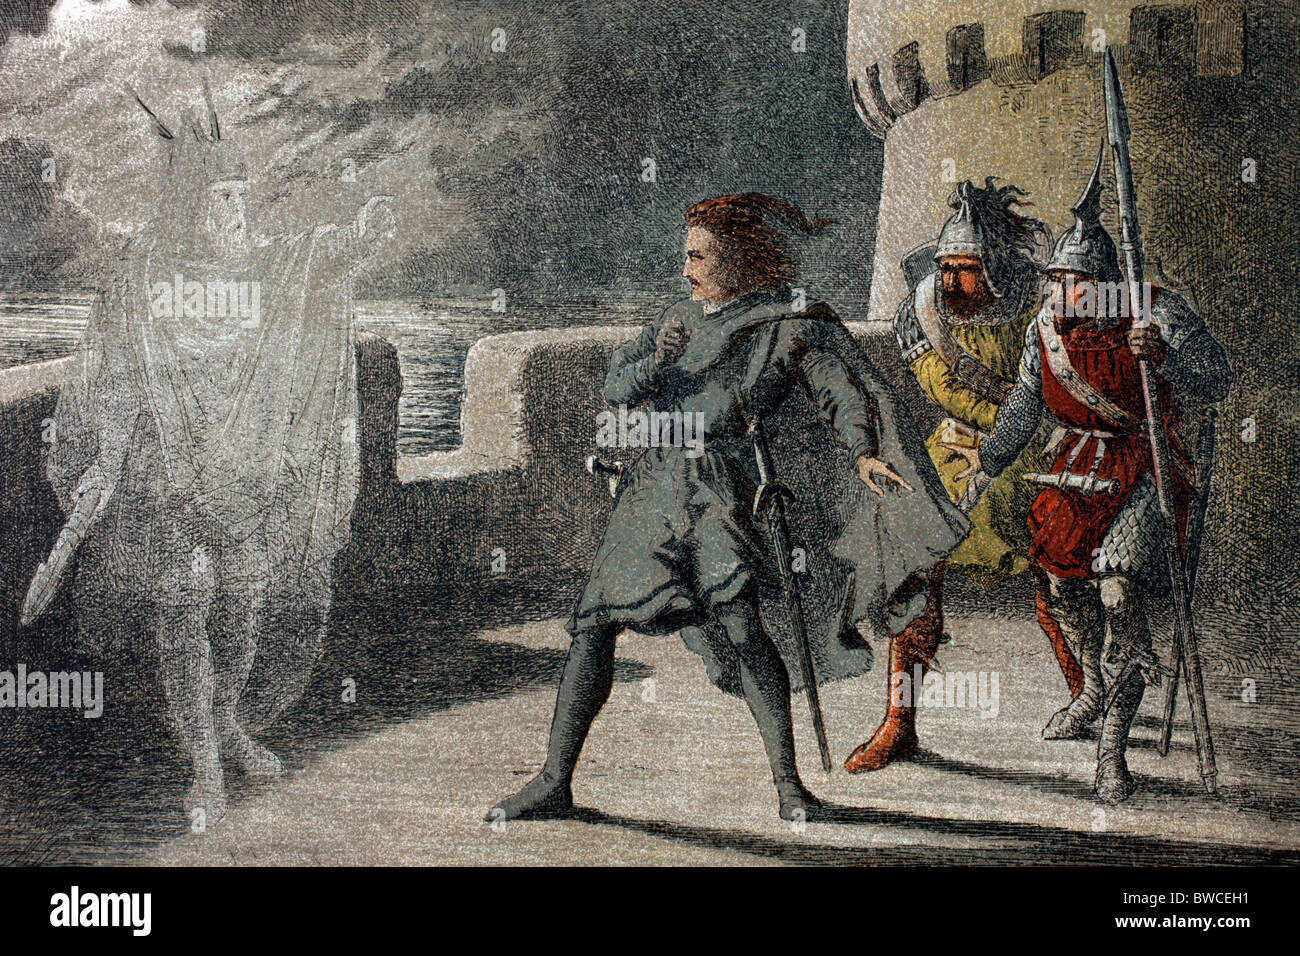 Hamlet sees the ghost of his father in Hamlet, Act I, Scene IV by William Shakespeare. - Stock Image